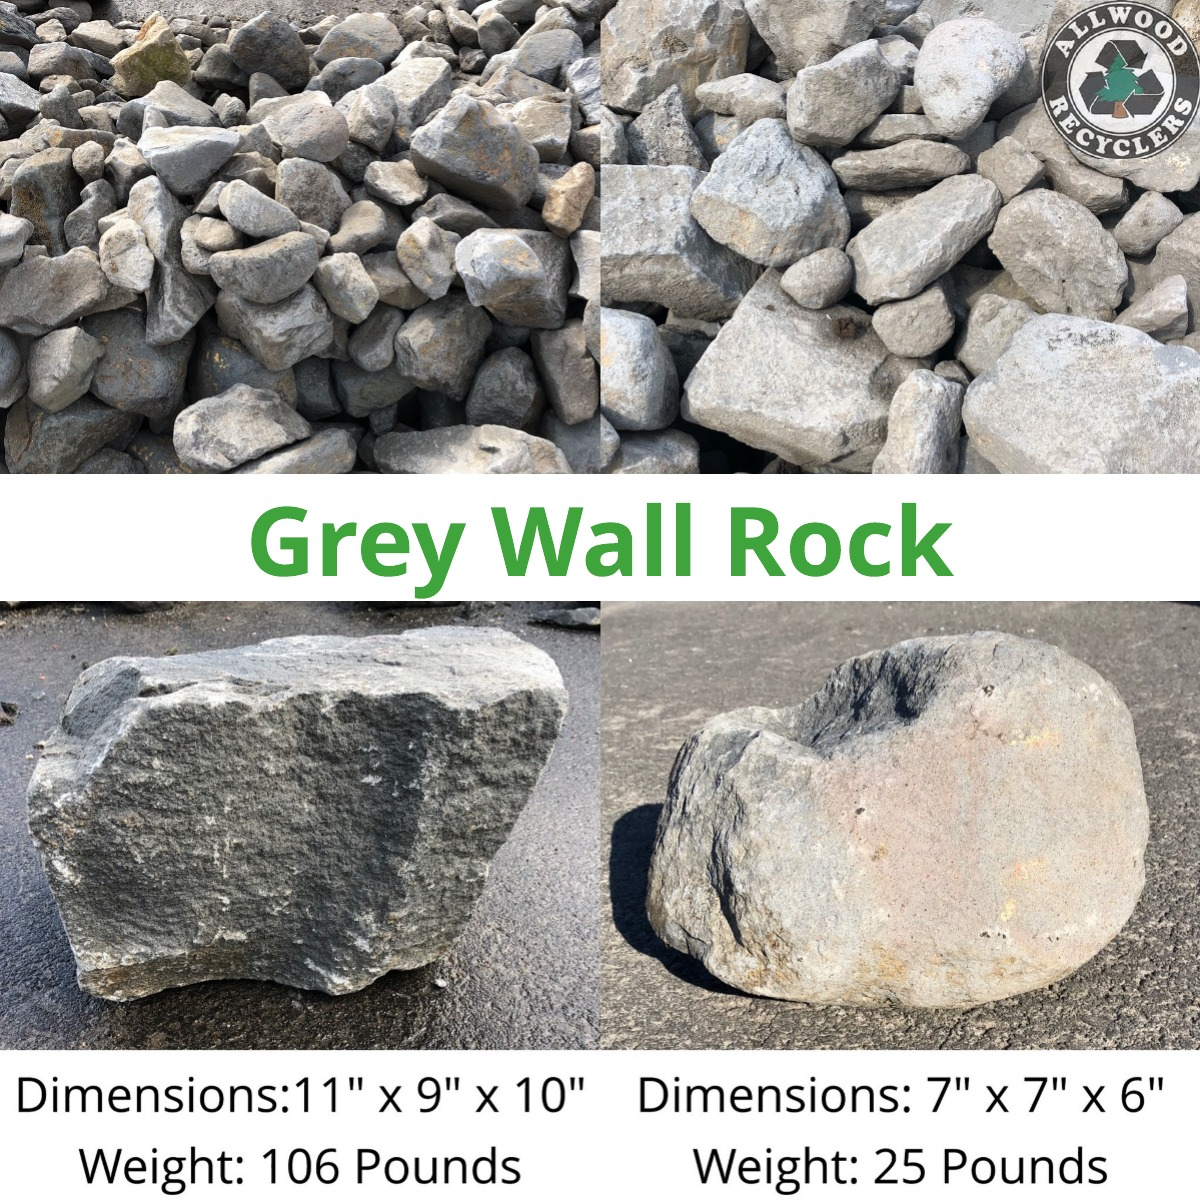 Grey Wall Rock